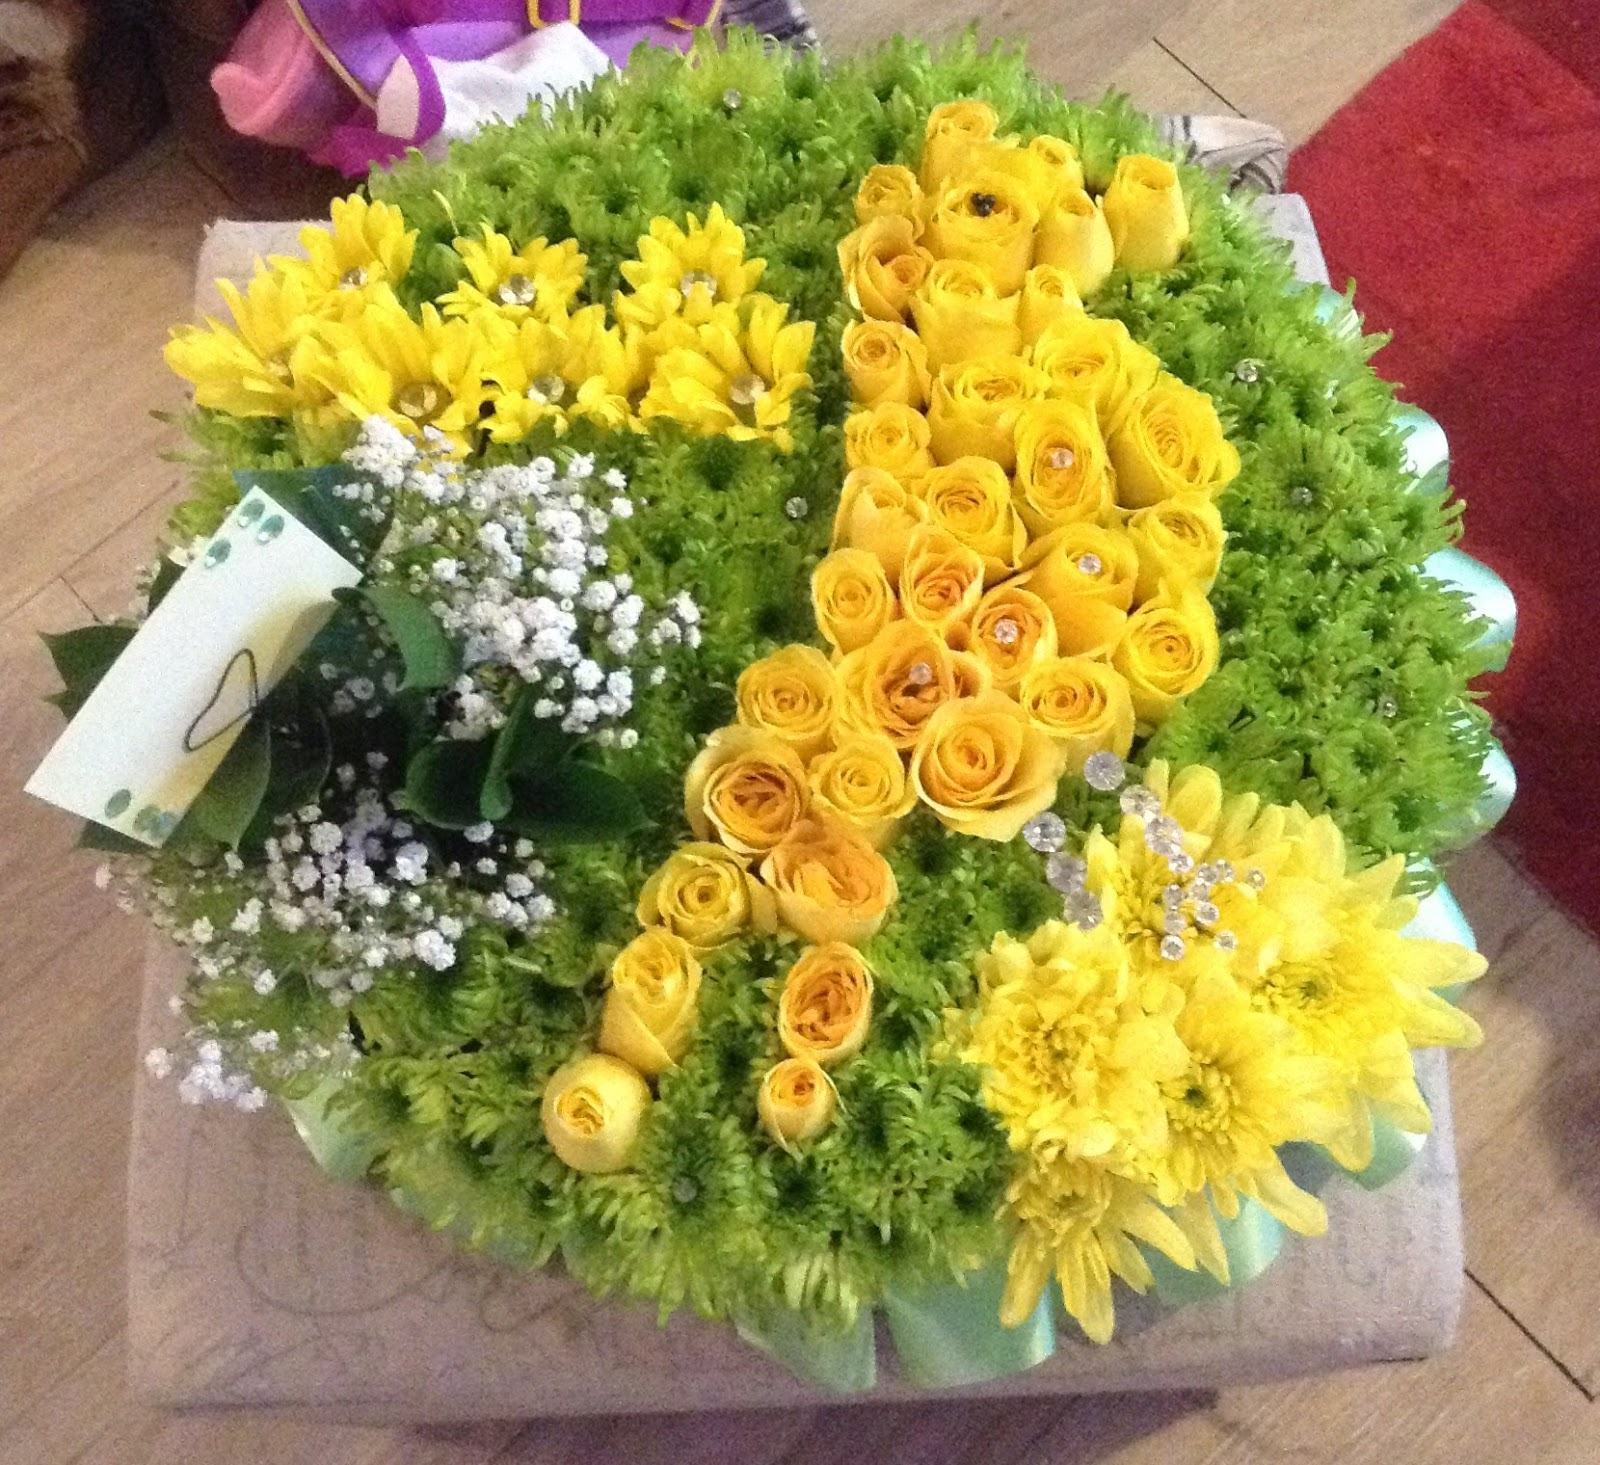 Callaways Creations Funeral Flowers For An All Time Norwich City